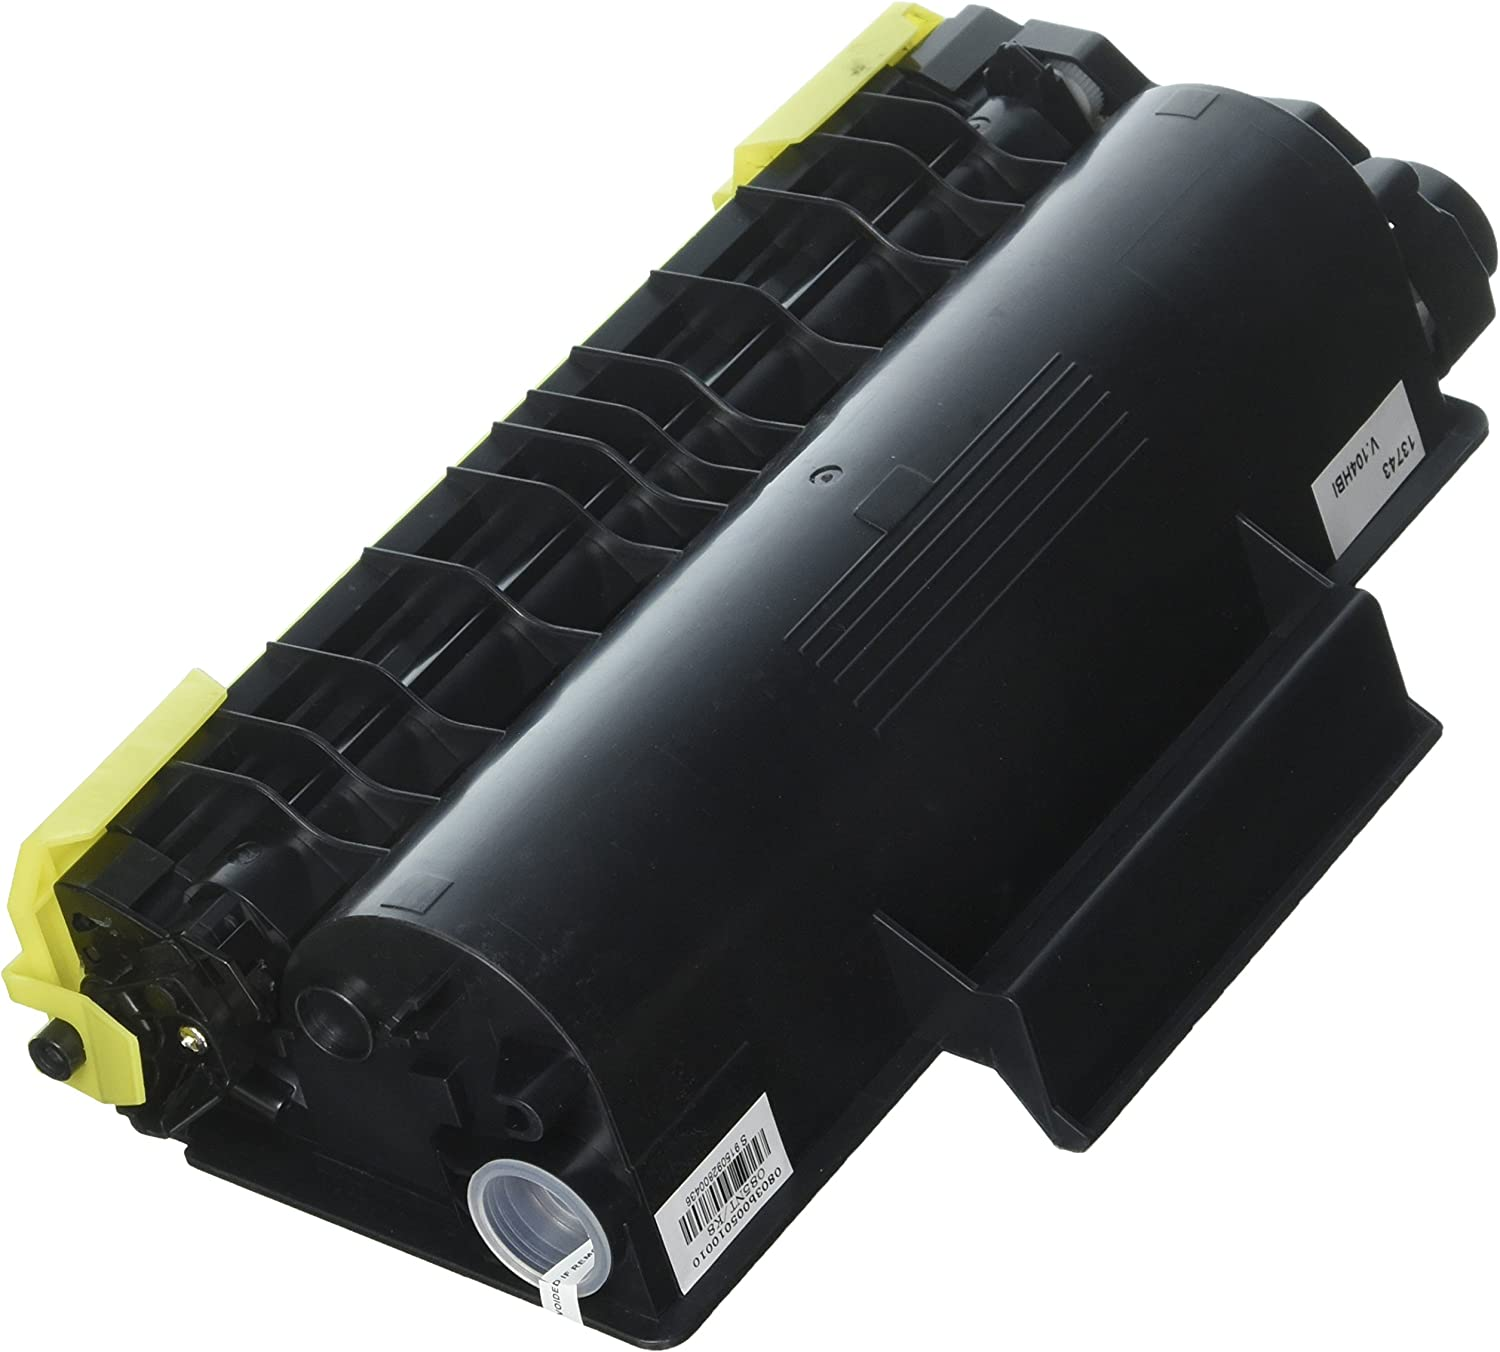 Monoprice 108960 MPI Laser/Toner, Black (High Yield) Compatible with Brother TN550/580/620/650